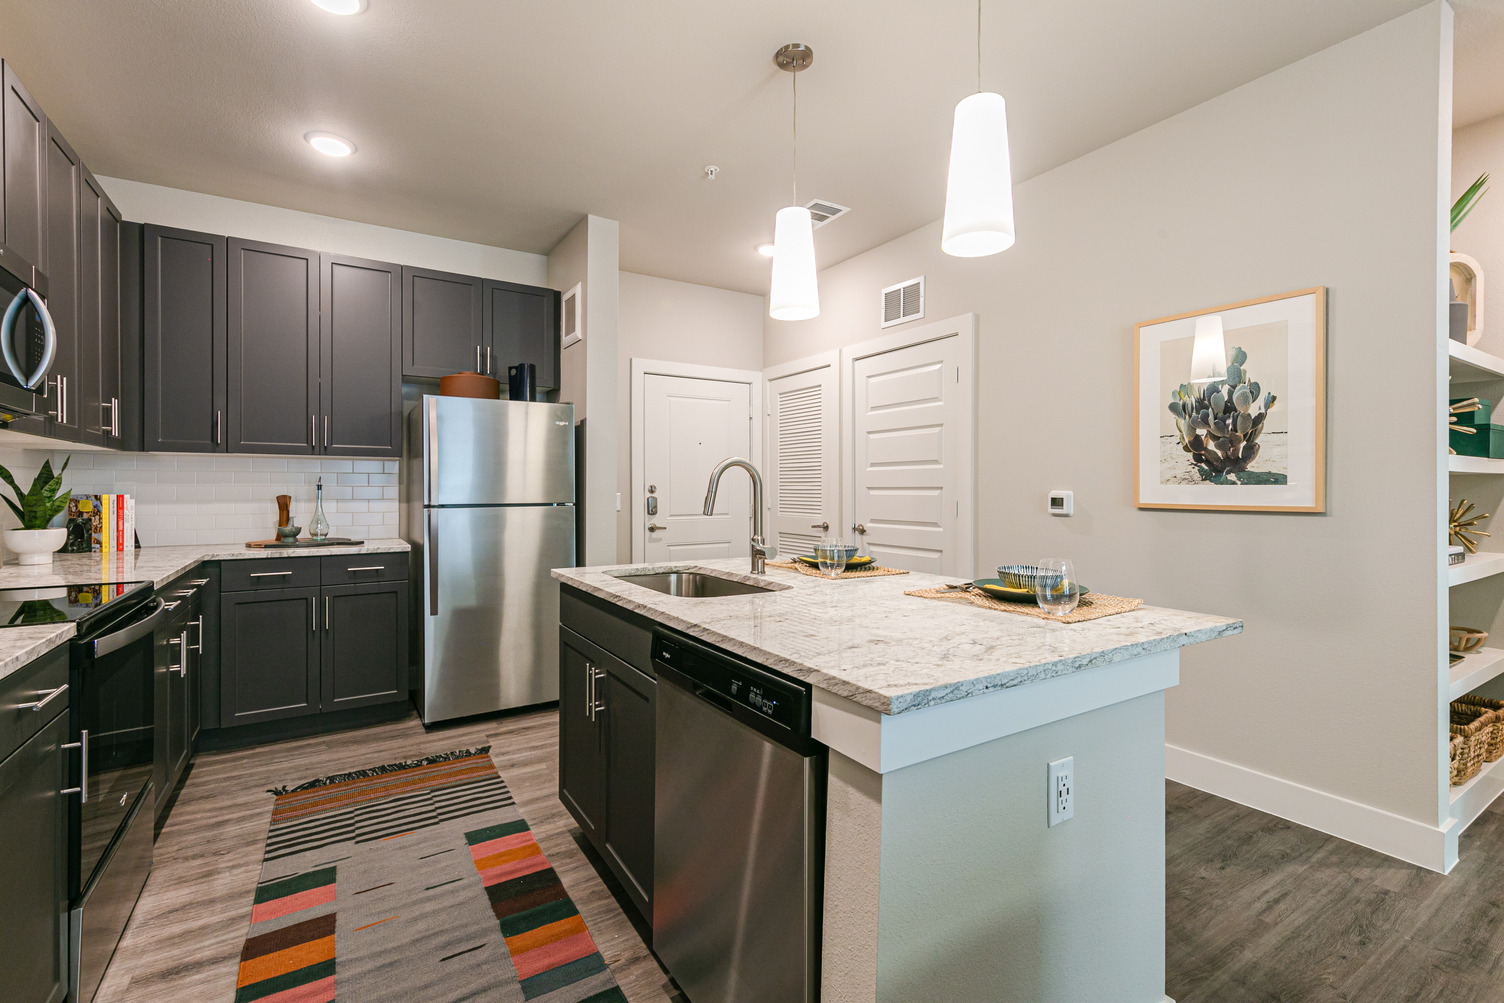 Model apartment kitchen with dark cabinets, quartz countertops, stainless steel appliances, and island with sink and dishwasher